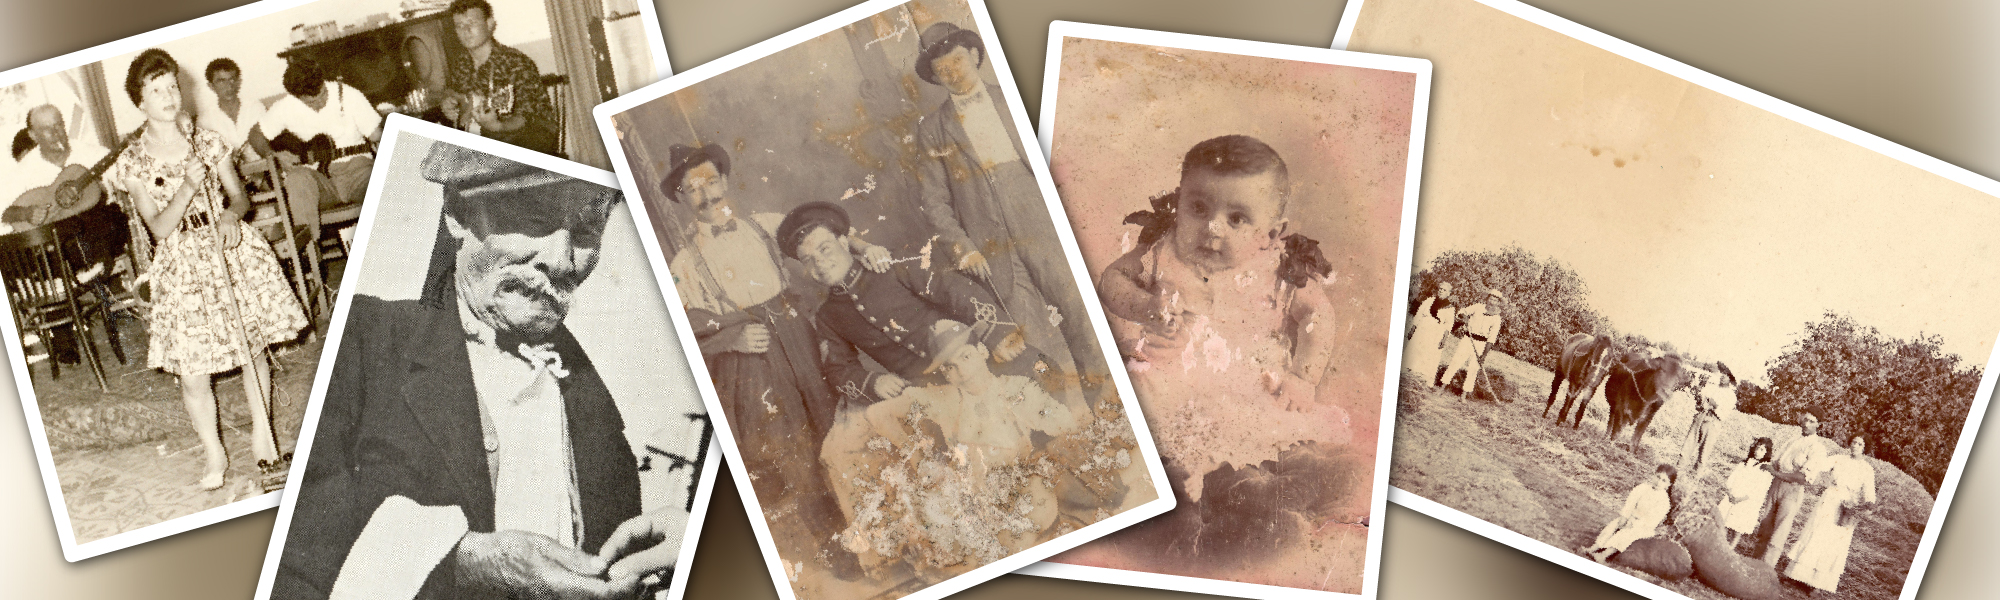 Five antique photos with people on them